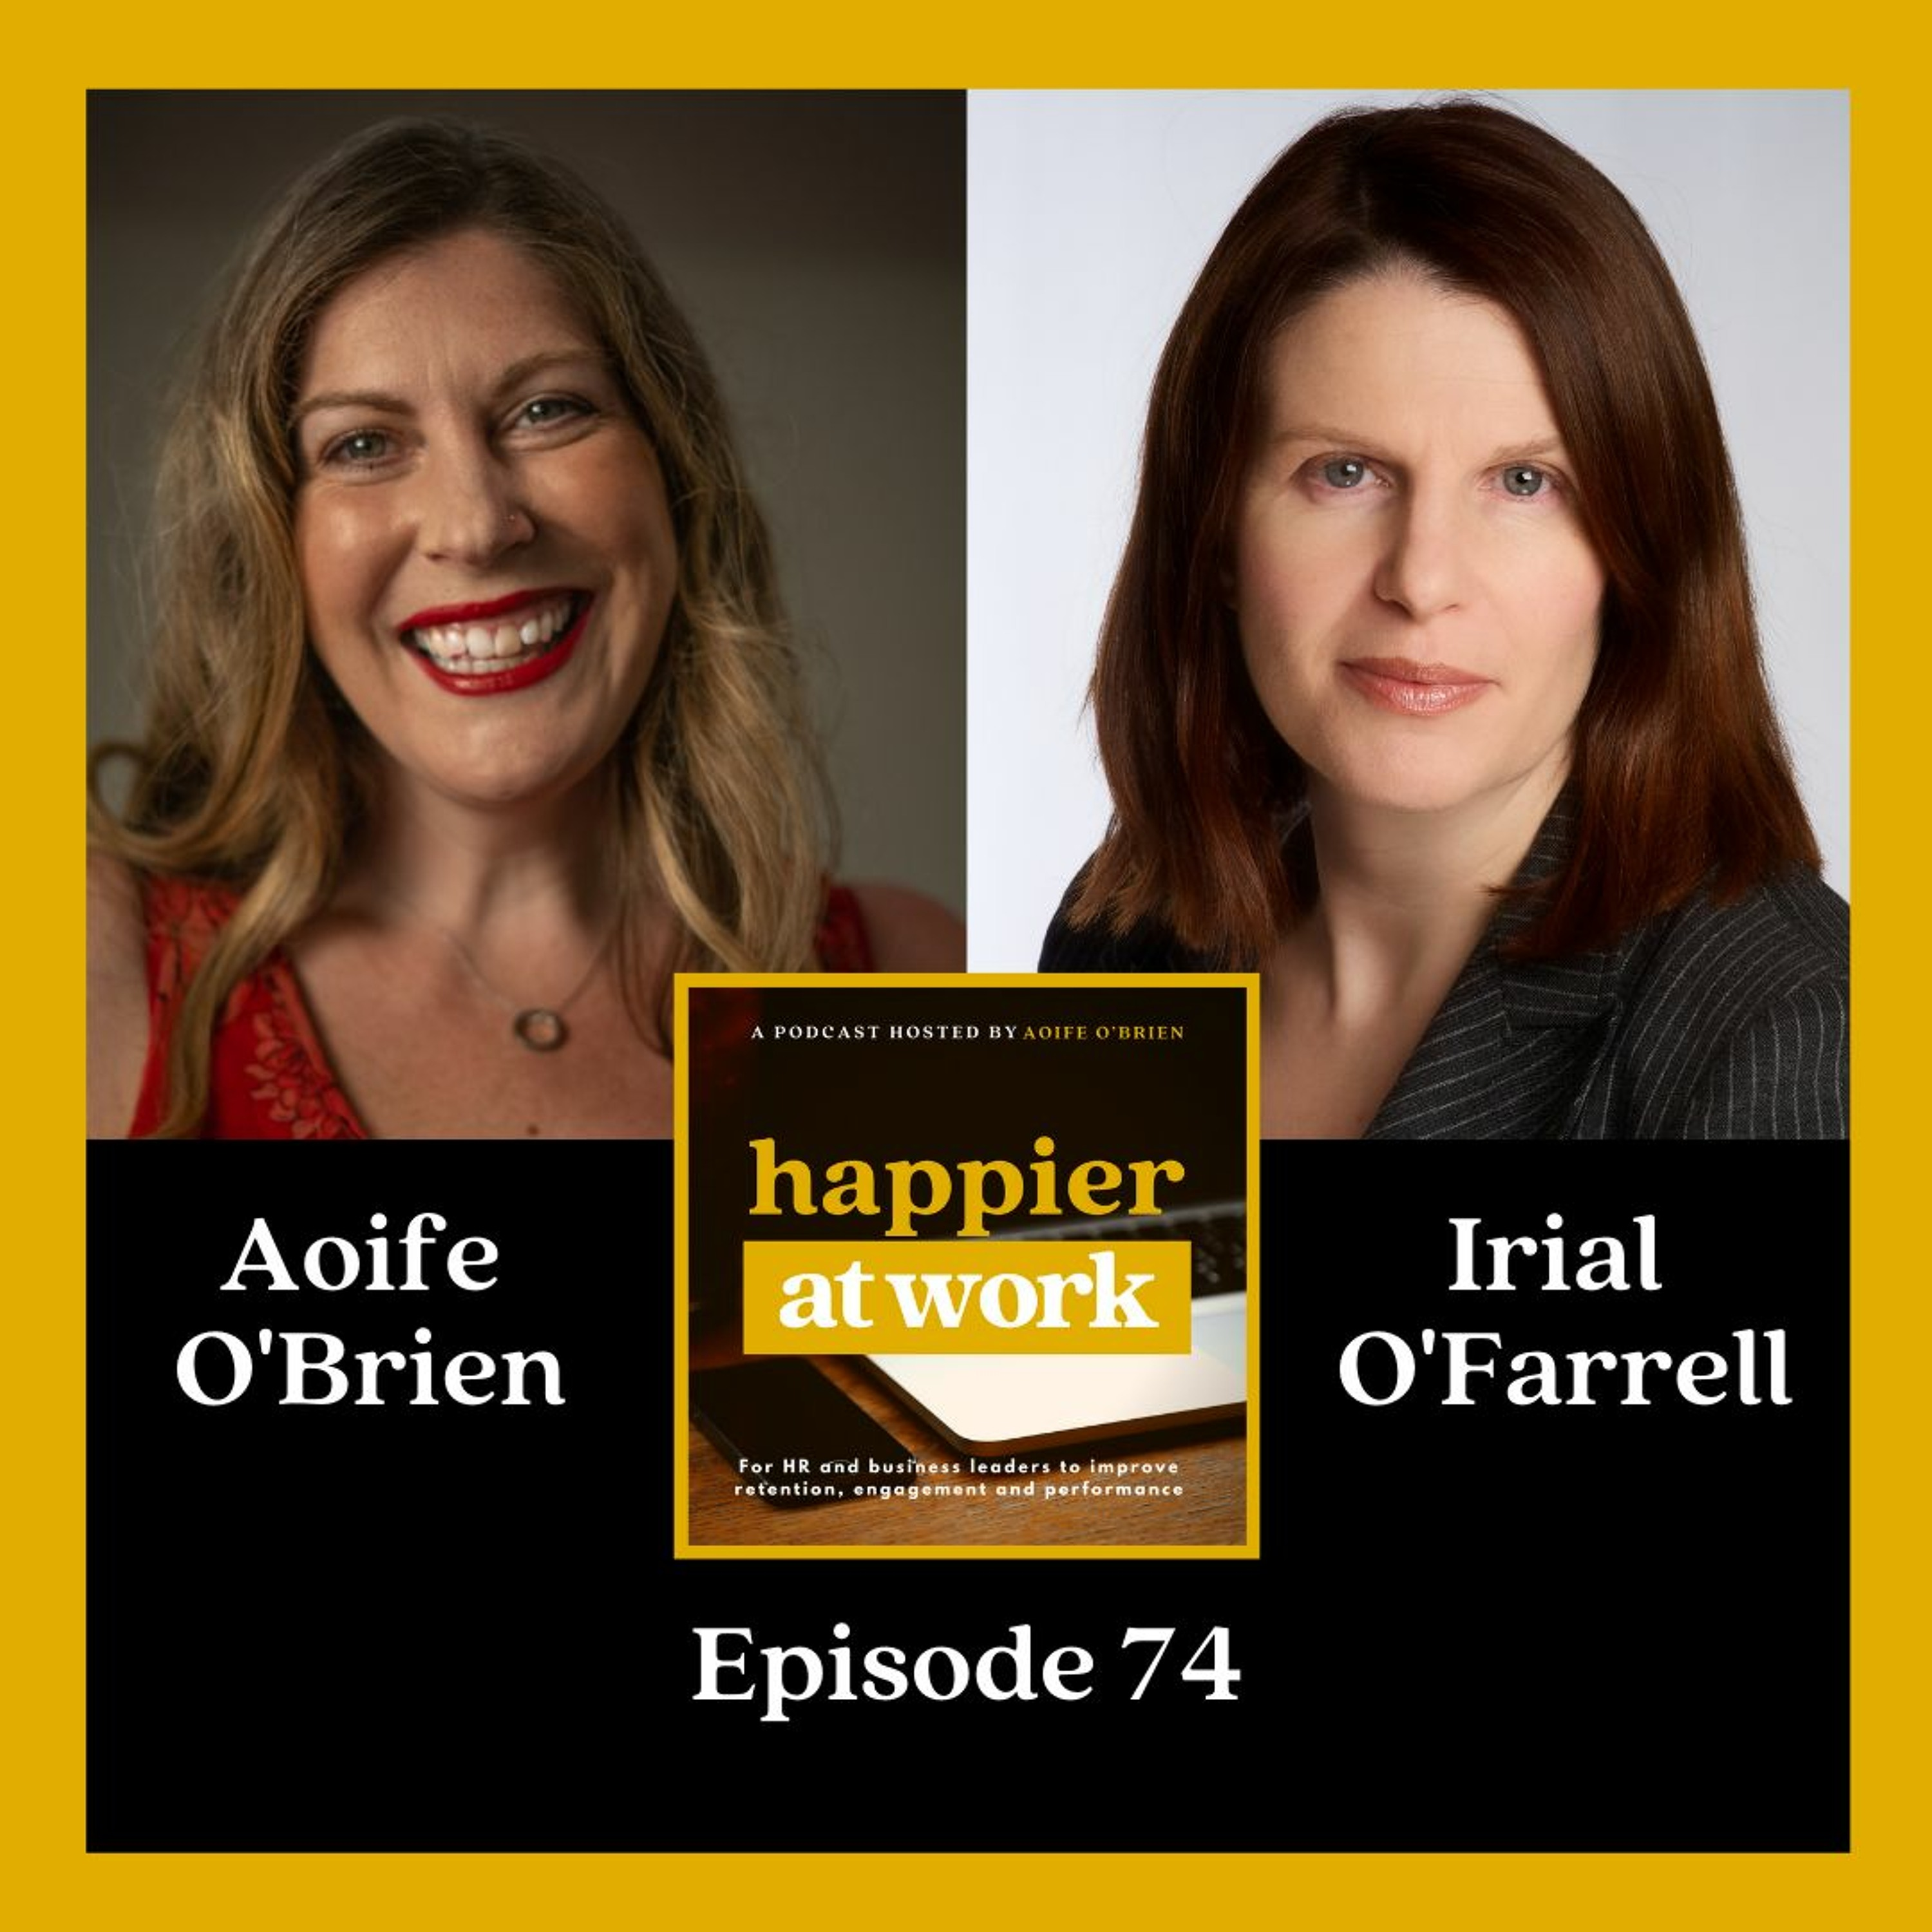 74: The Values of Business with Irial O'Farrell